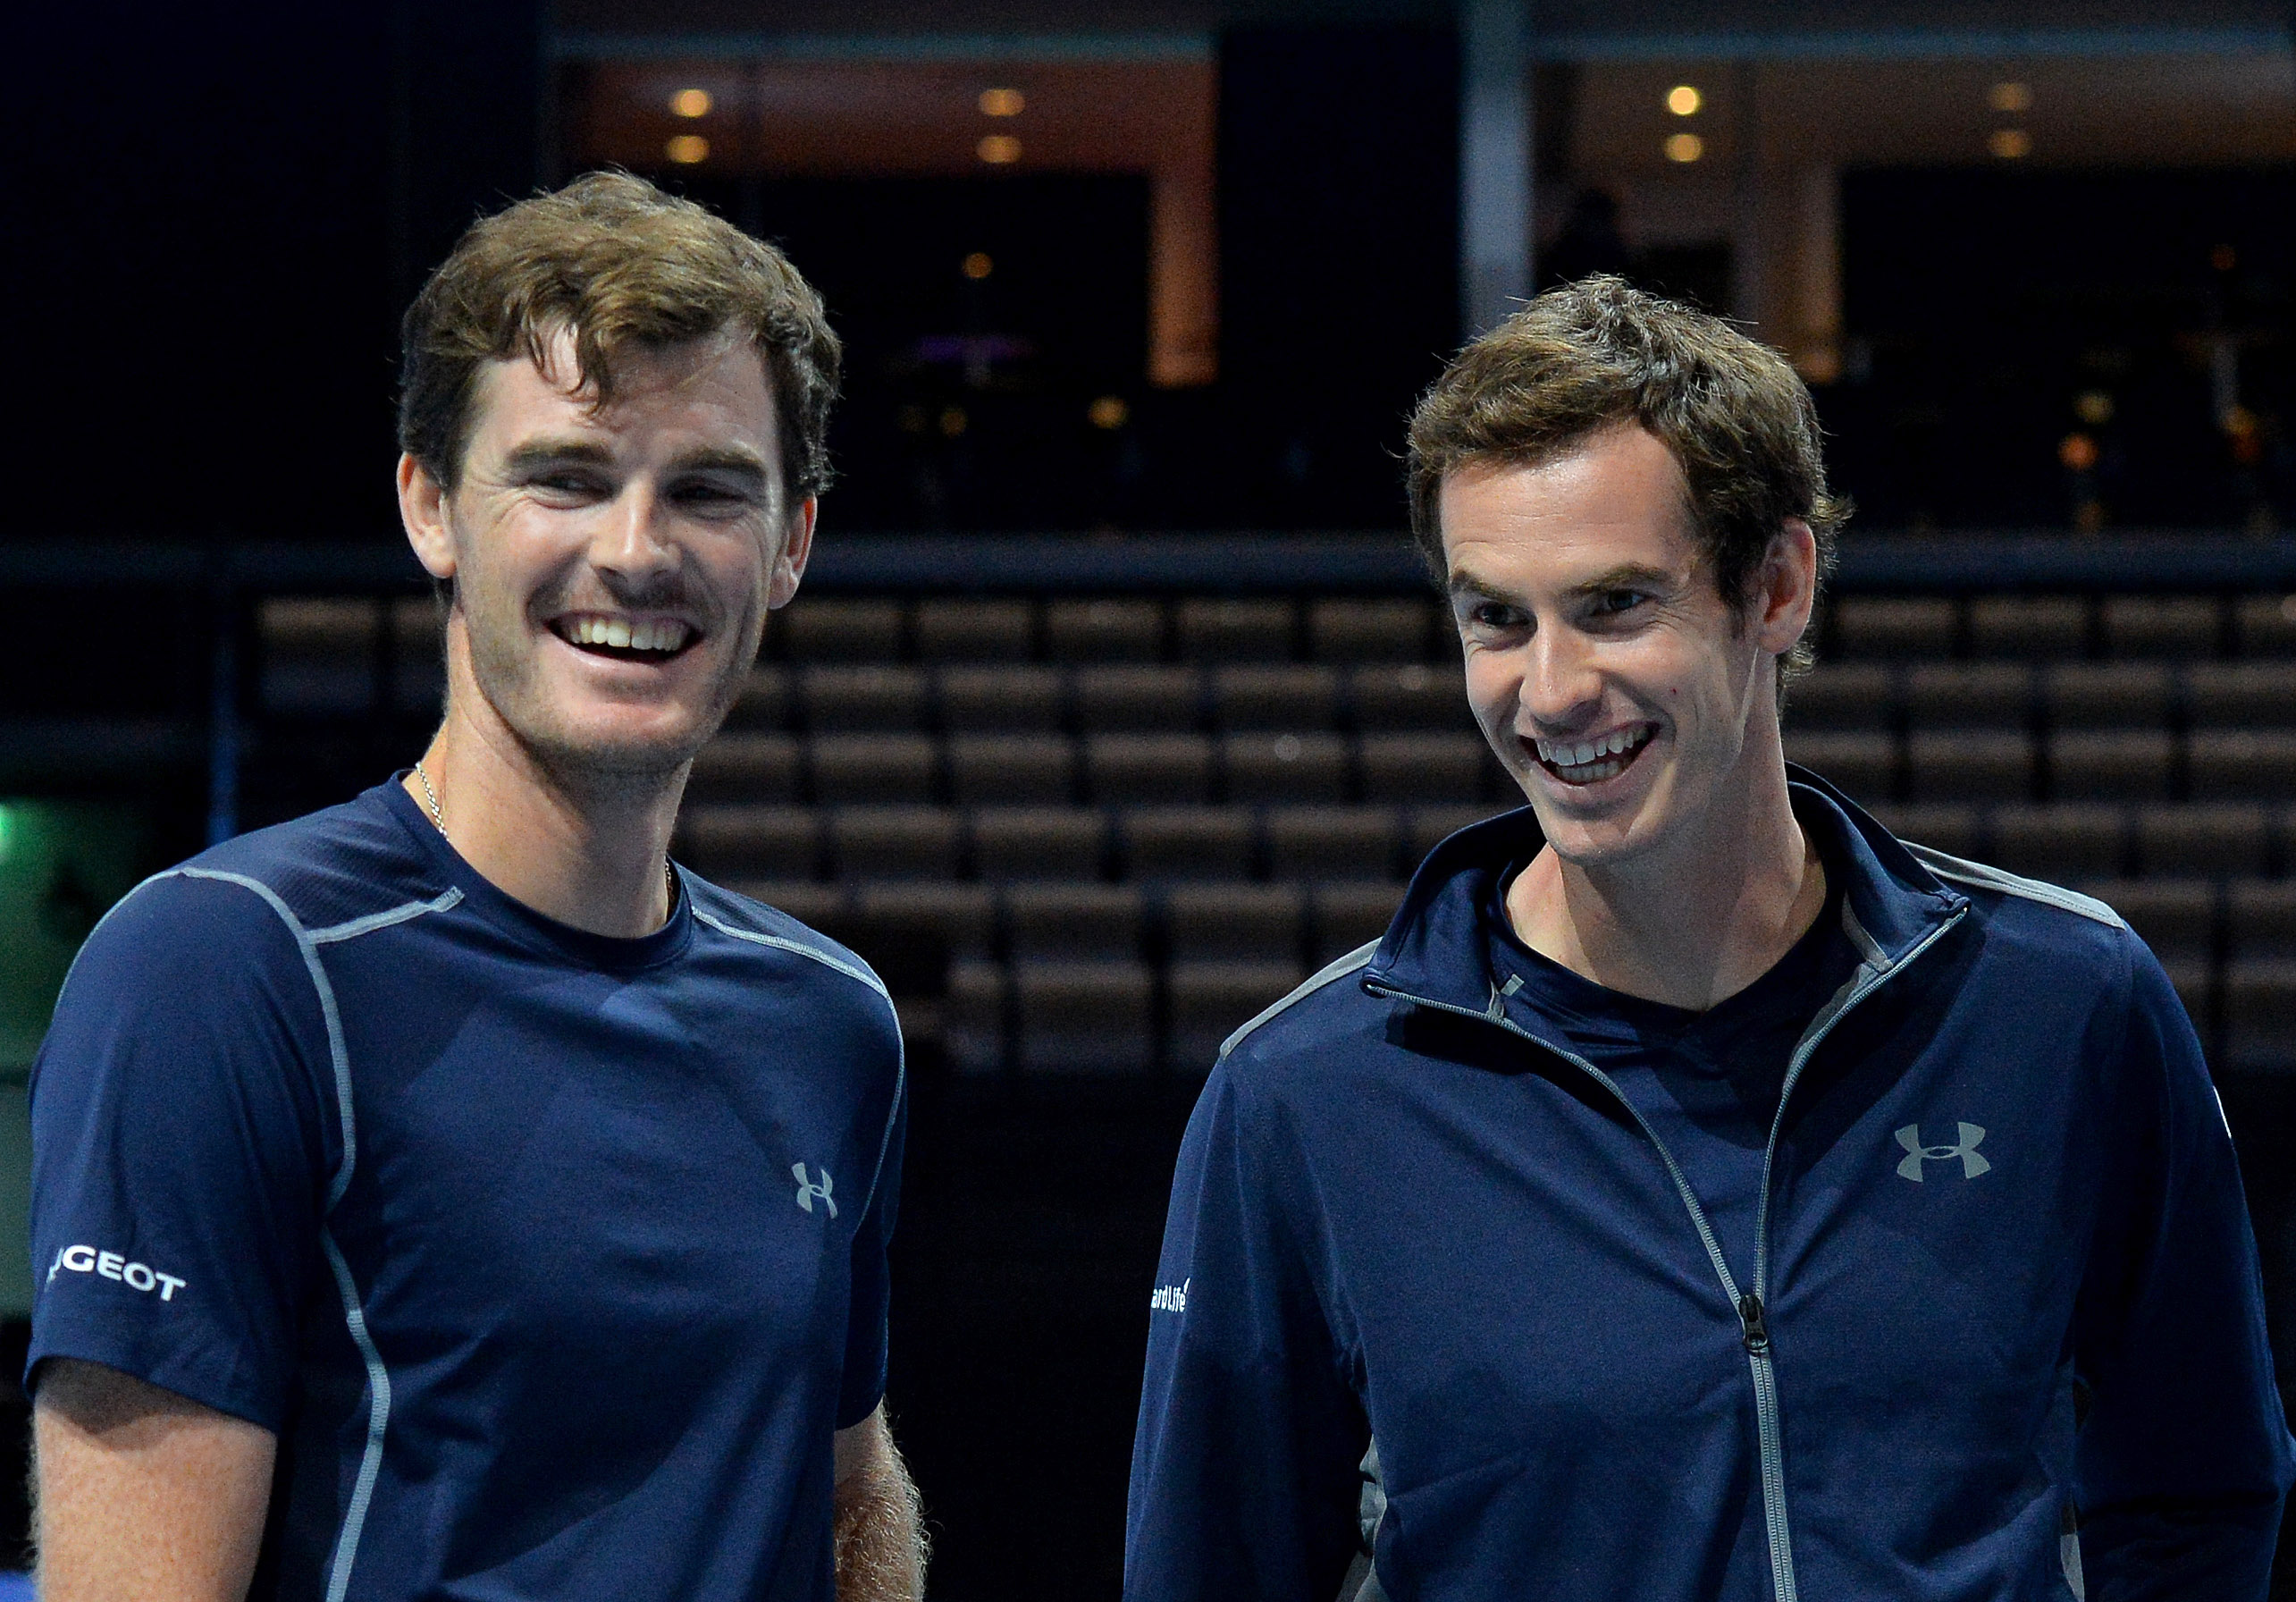 'Just keep doing your thing' – Jamie Murray urges brother Andy to fight on for No. 1 at ATP World Tour Finals